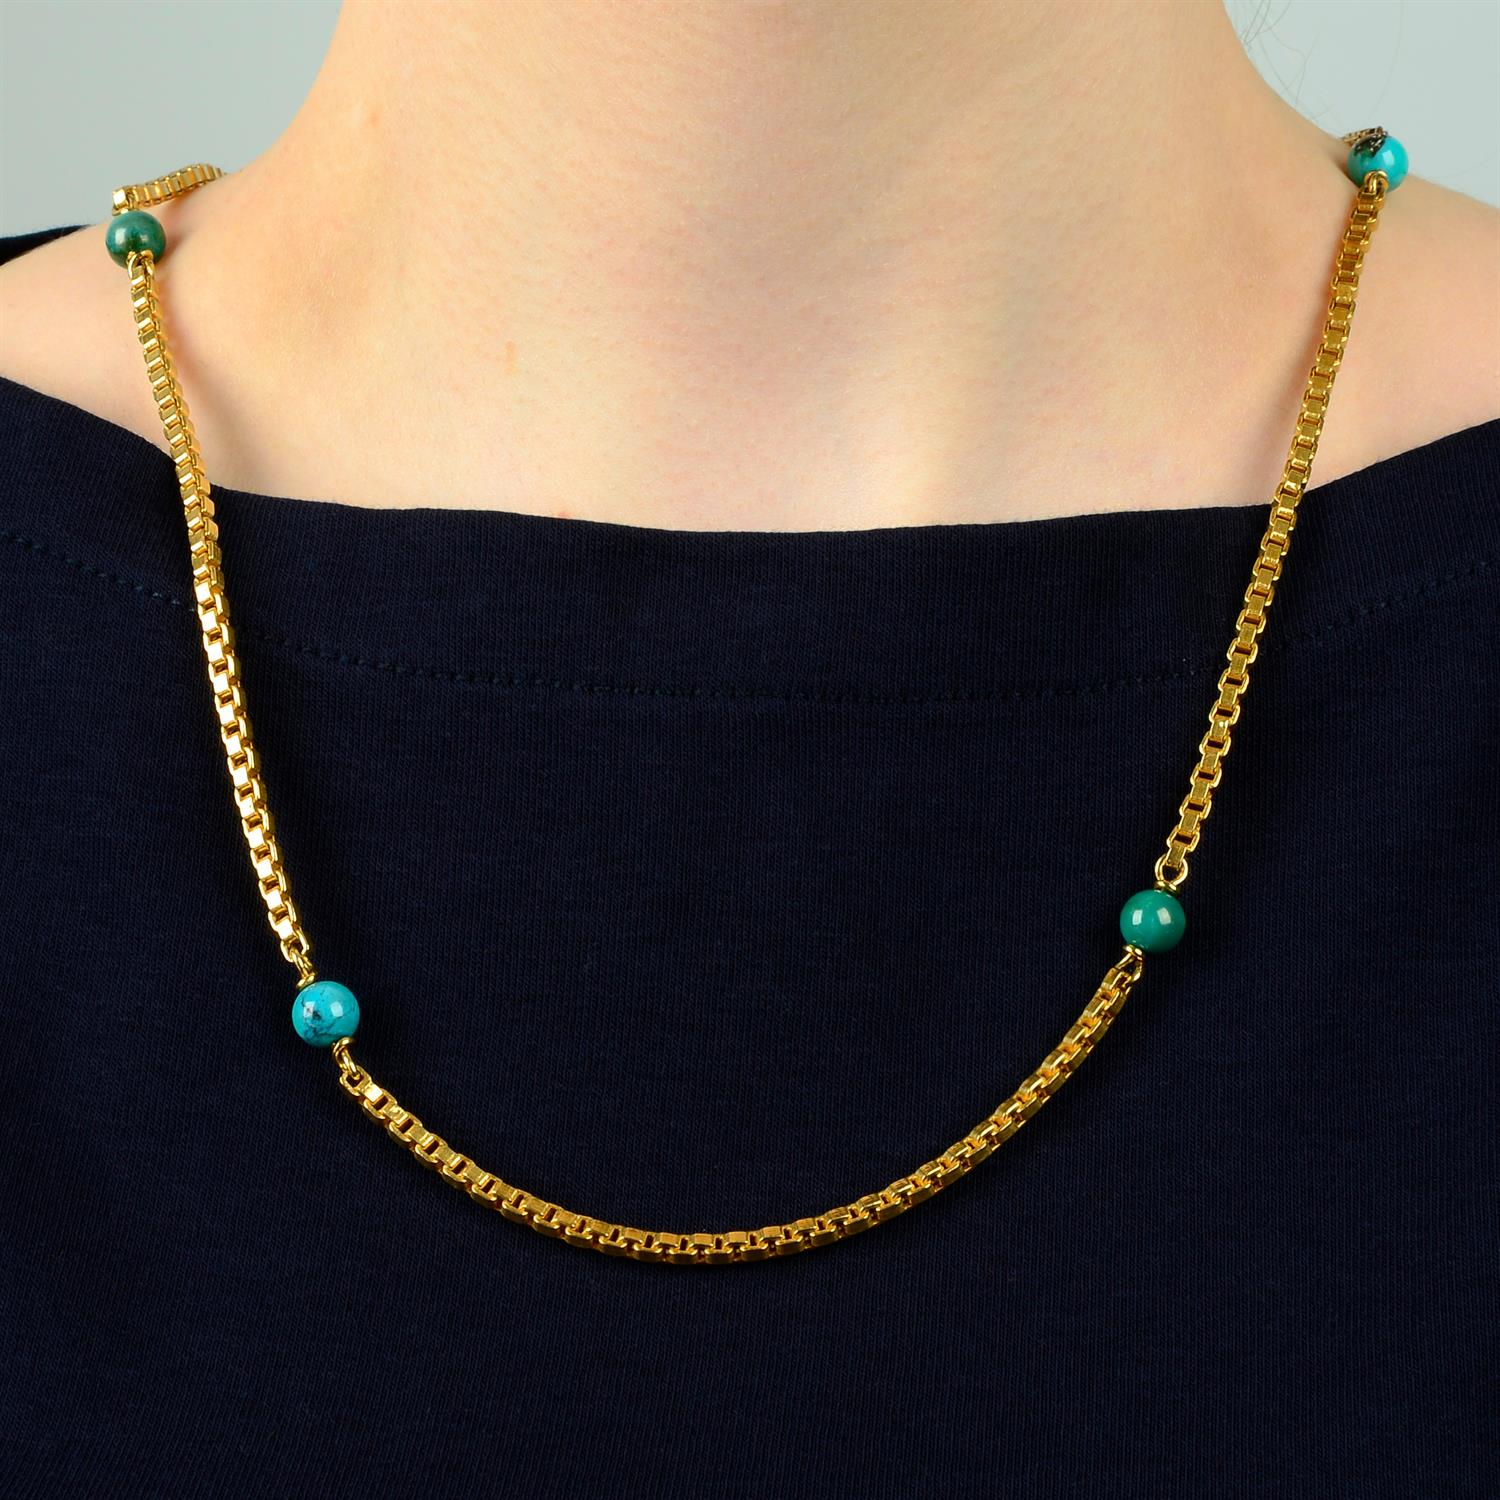 A mid 20th century Italian 18ct gold necklace, with turquoise matrix bead spacers, by Orf.